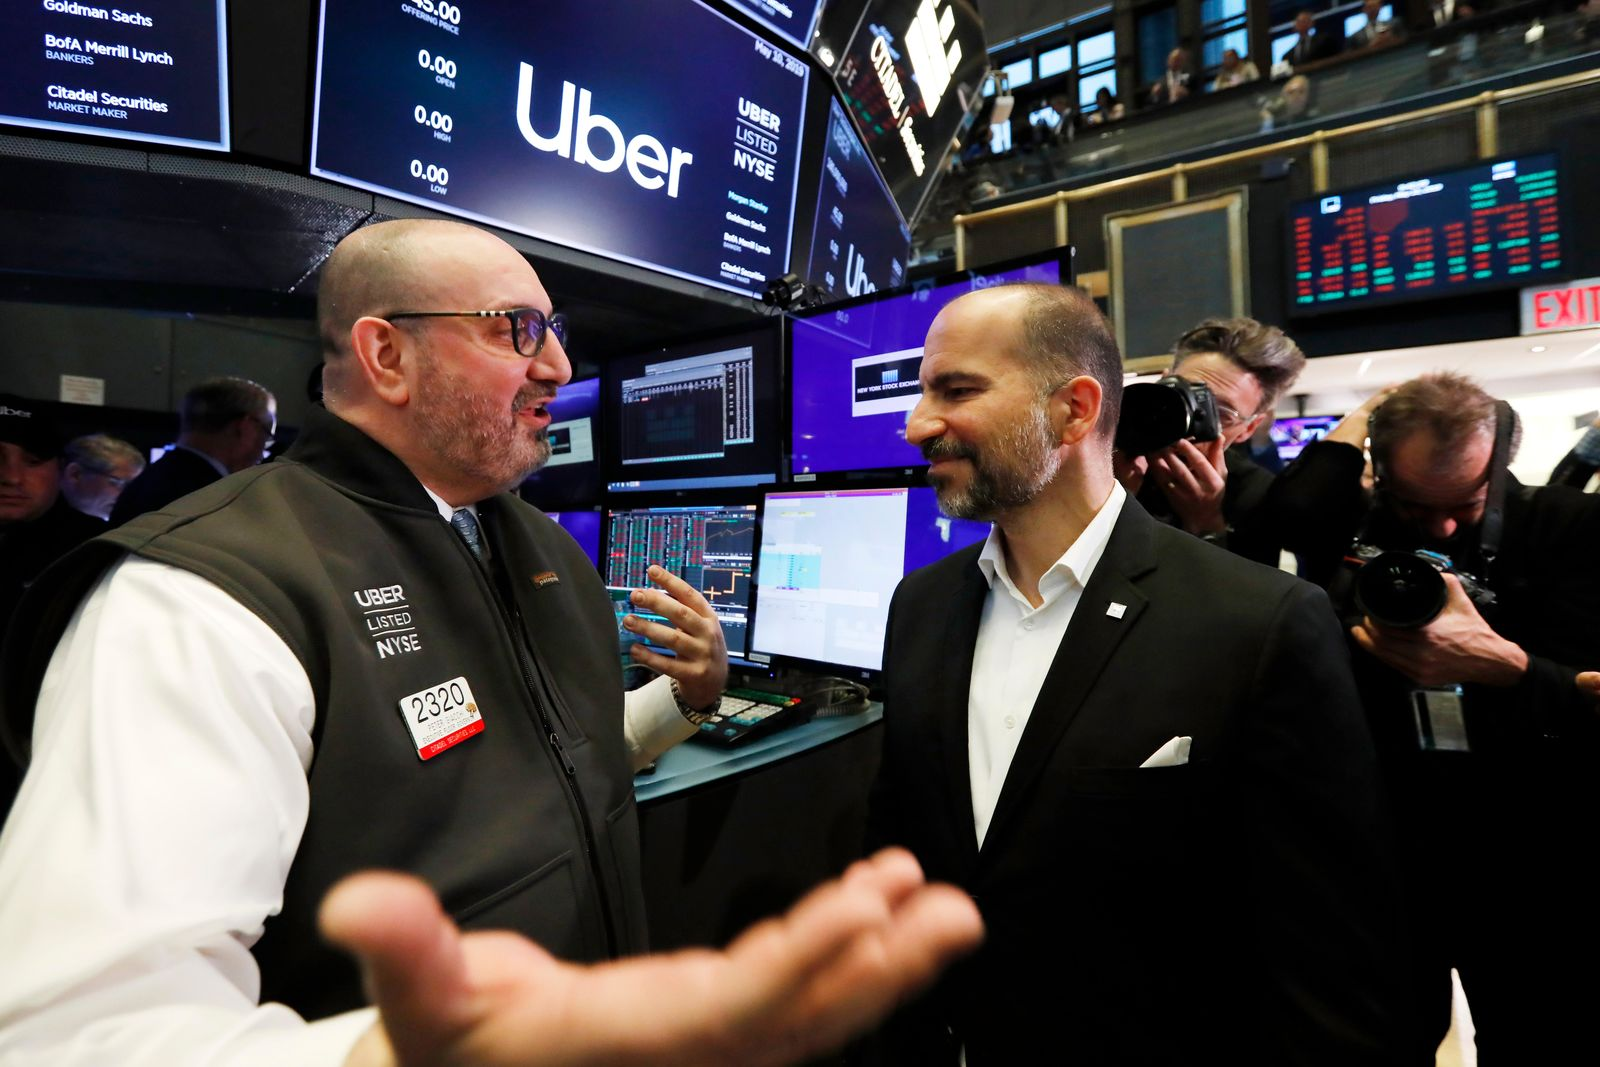 Uber CEO Dara Khosrowshahi, right, talks with specialist Peter Giacchi before his stock begins trading at the New York Stock Exchange, as his company makes its initial public offering, Friday, May 10, 2019. (AP Photo/Richard Drew)